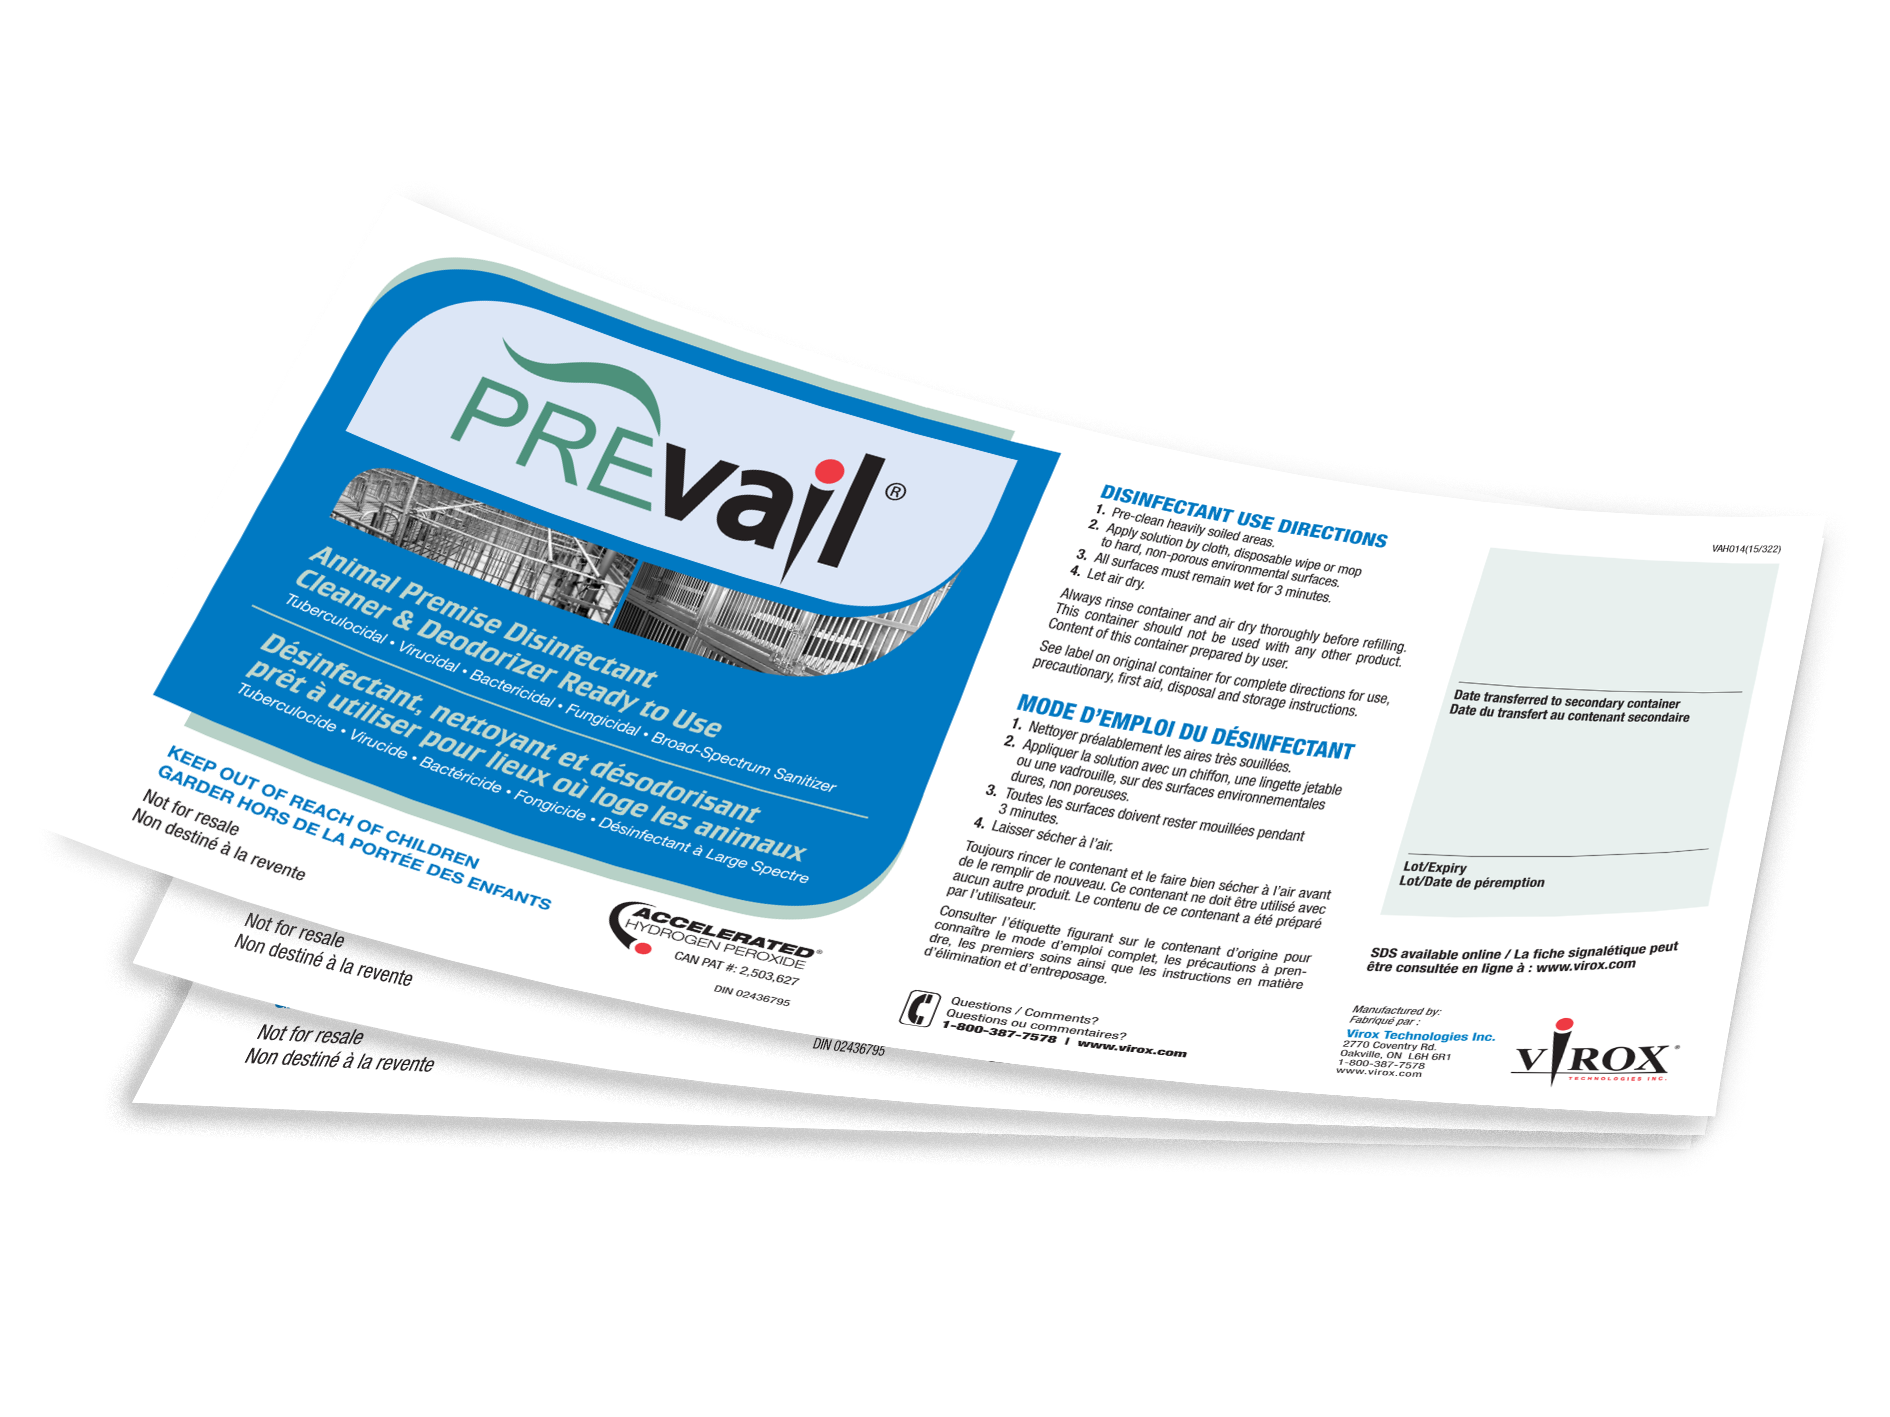 Prevail-workplace-label-product-image.png